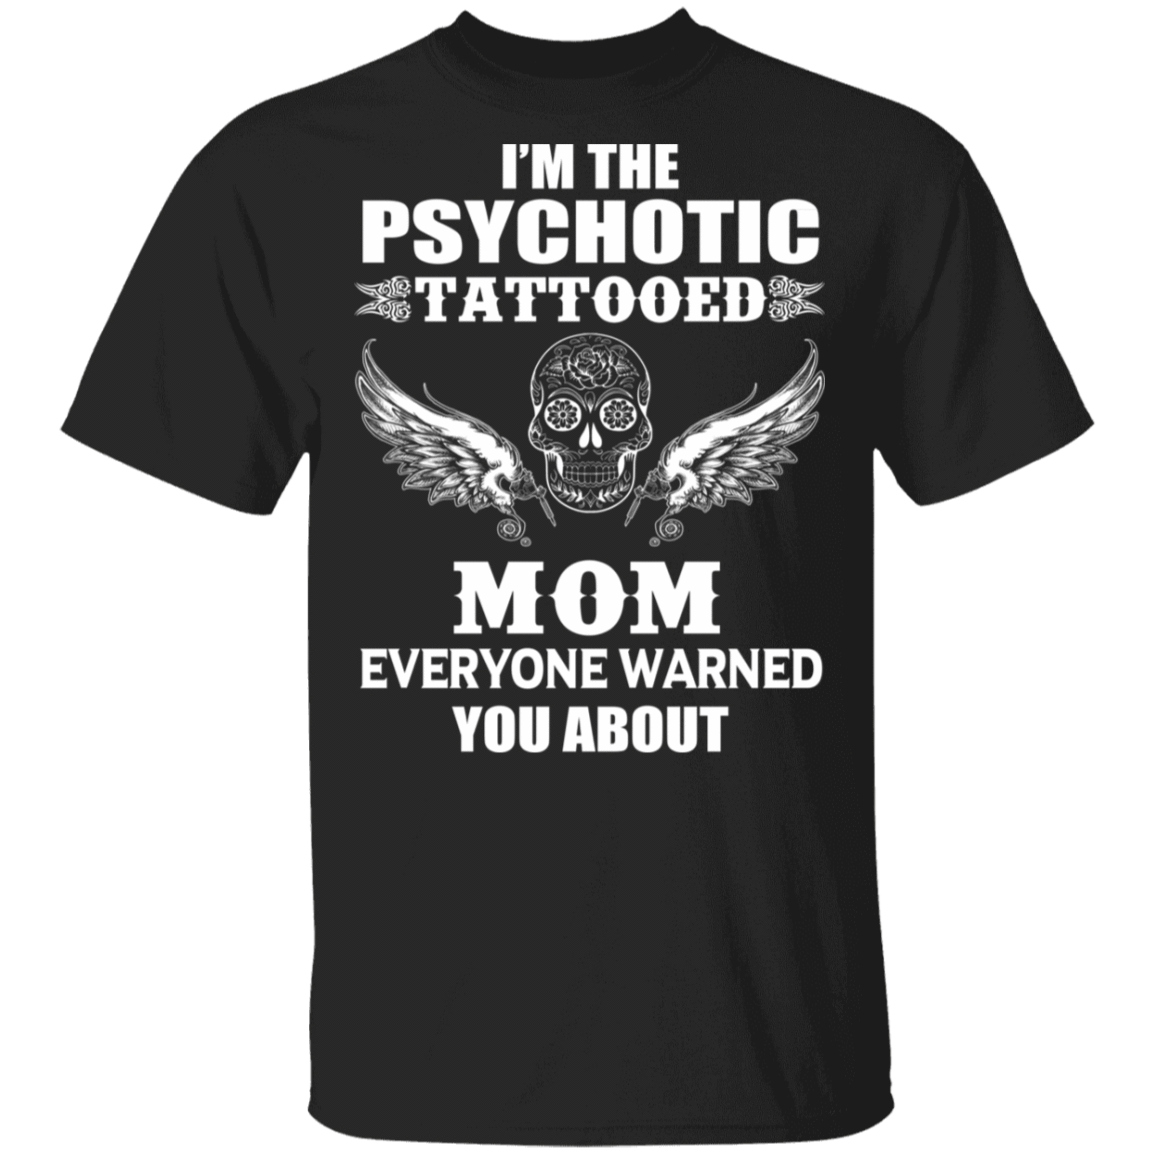 I'm The Psychotic Tattooed Mom Everyone Warned You About T-Shirts, Hoodies, Tank 1049-9953-81772823-48144 - Tee Ript